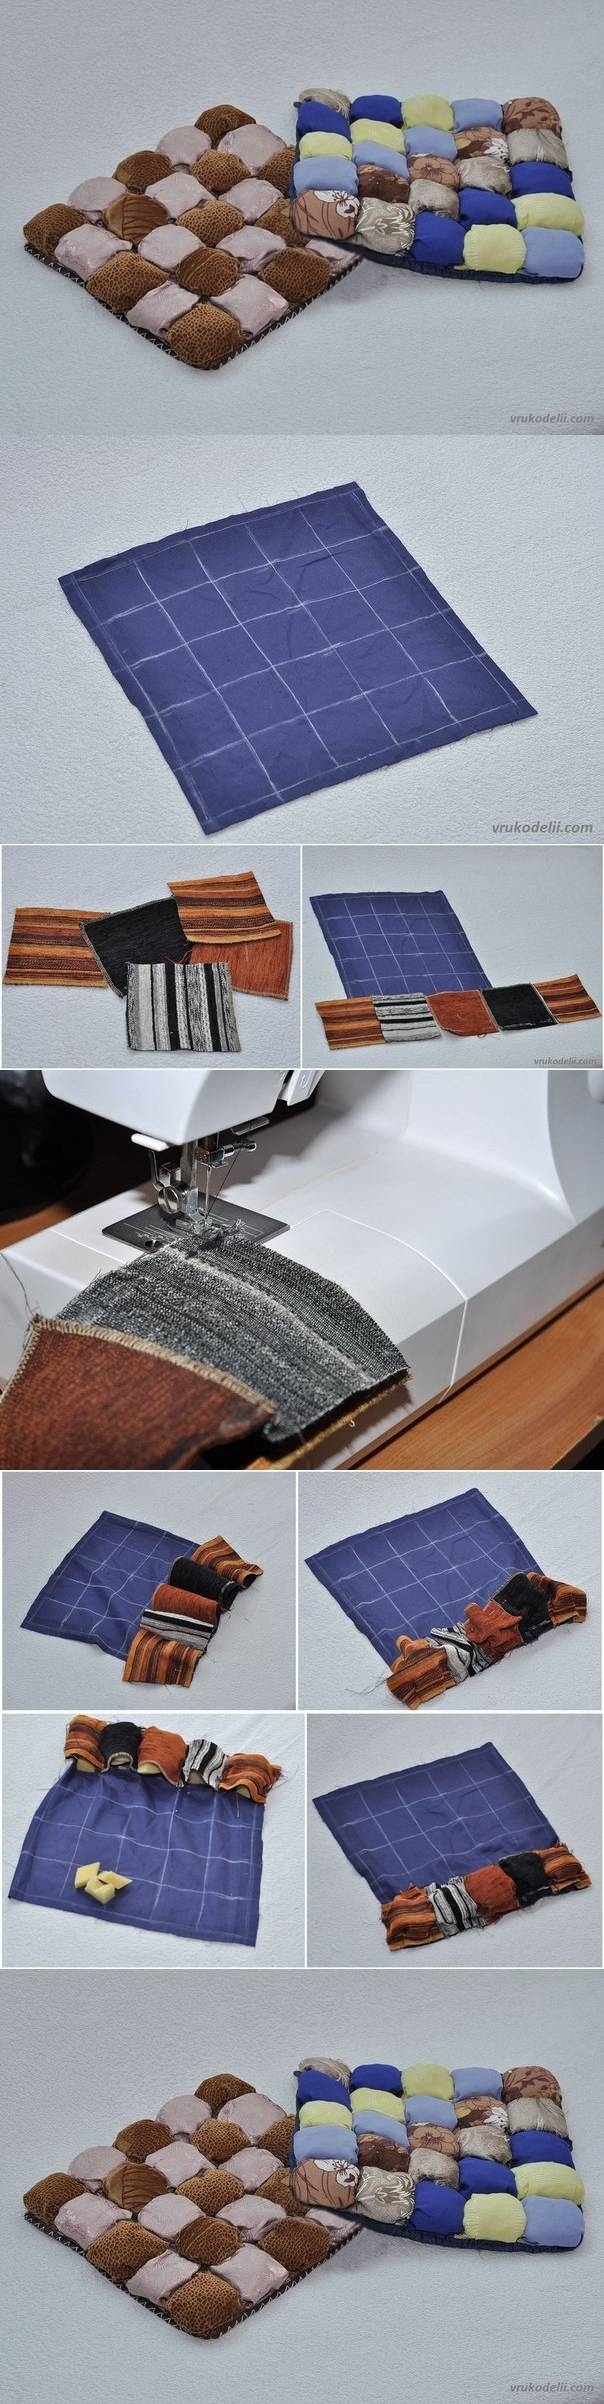 DIY Seat Cushions for Chairs